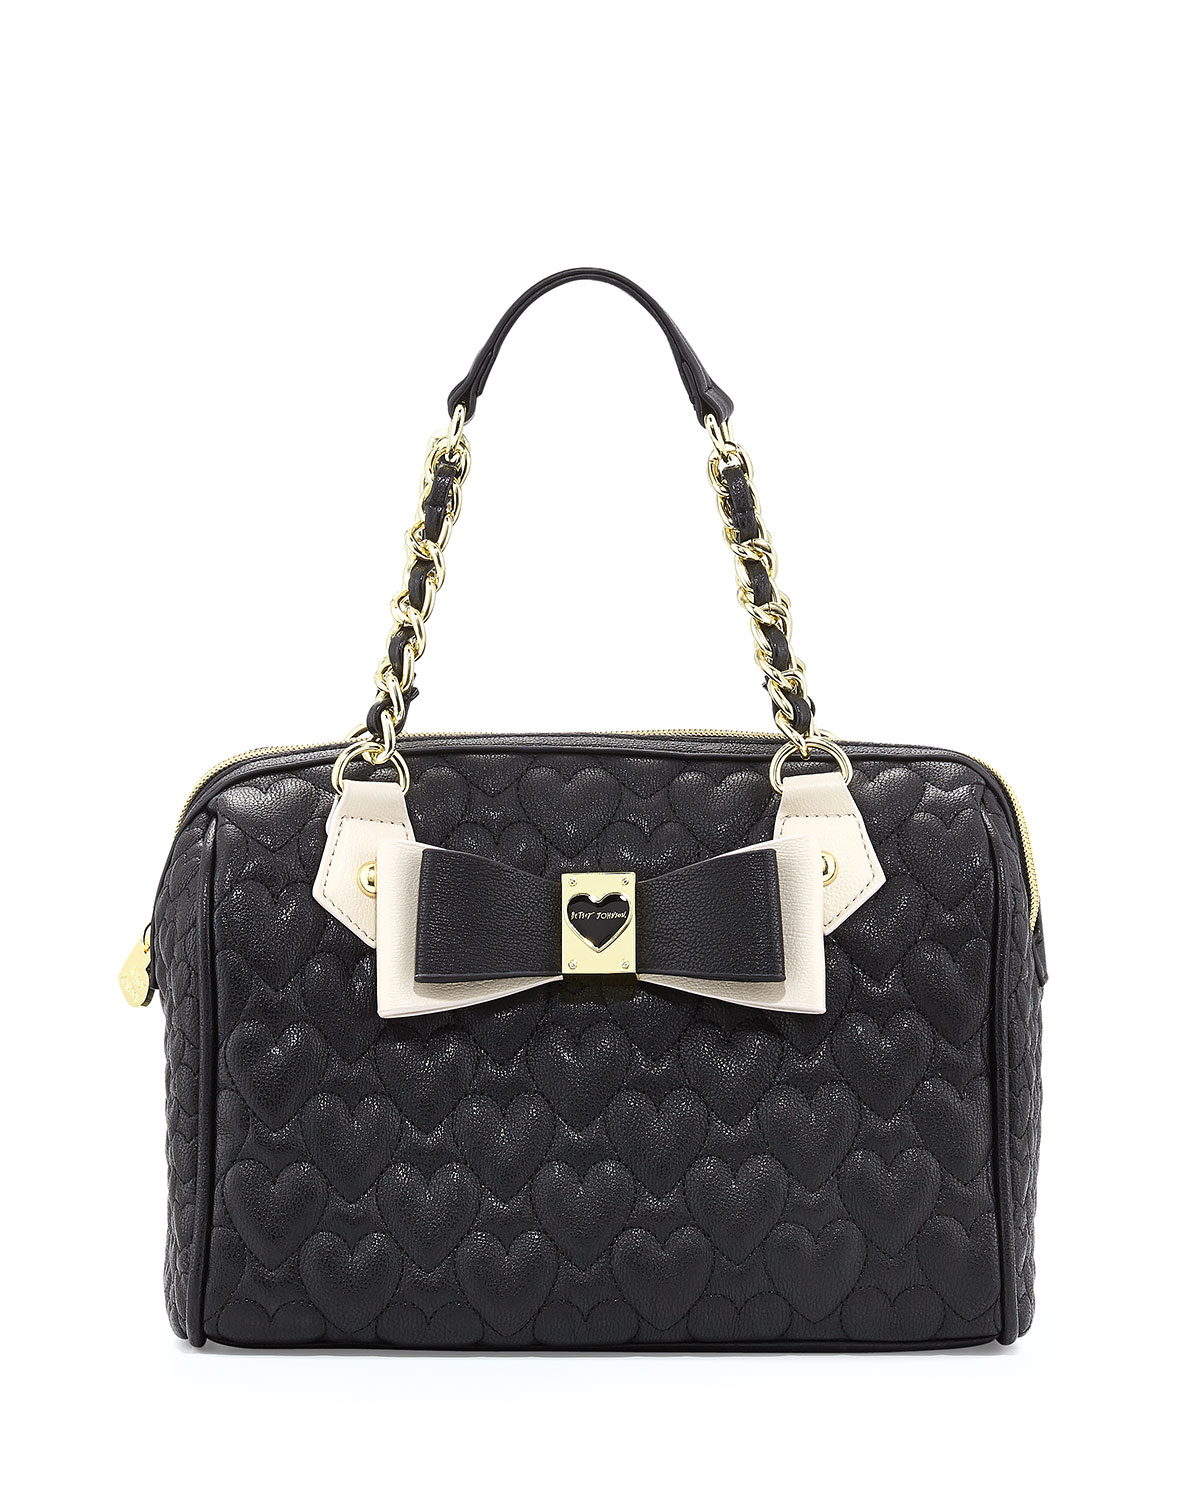 betsey johnson twotone quilted satchel bag black in